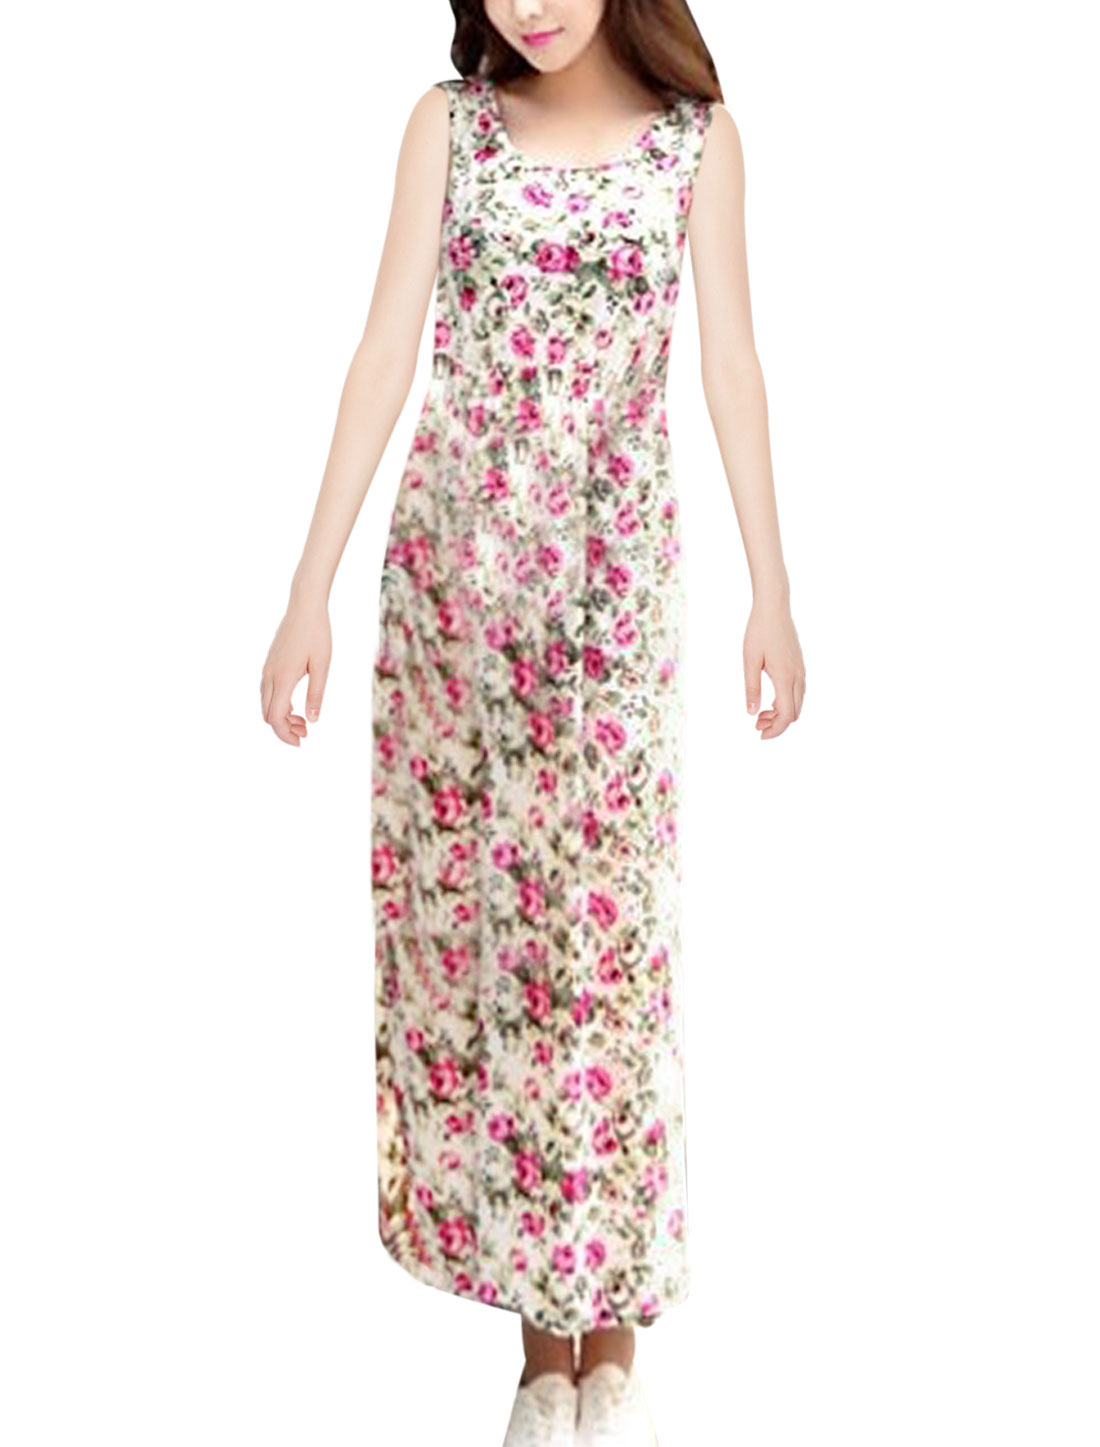 Ladies Scoop Neck Floral Prints Full-Length Sweet Tank Dress Fuchsia White S